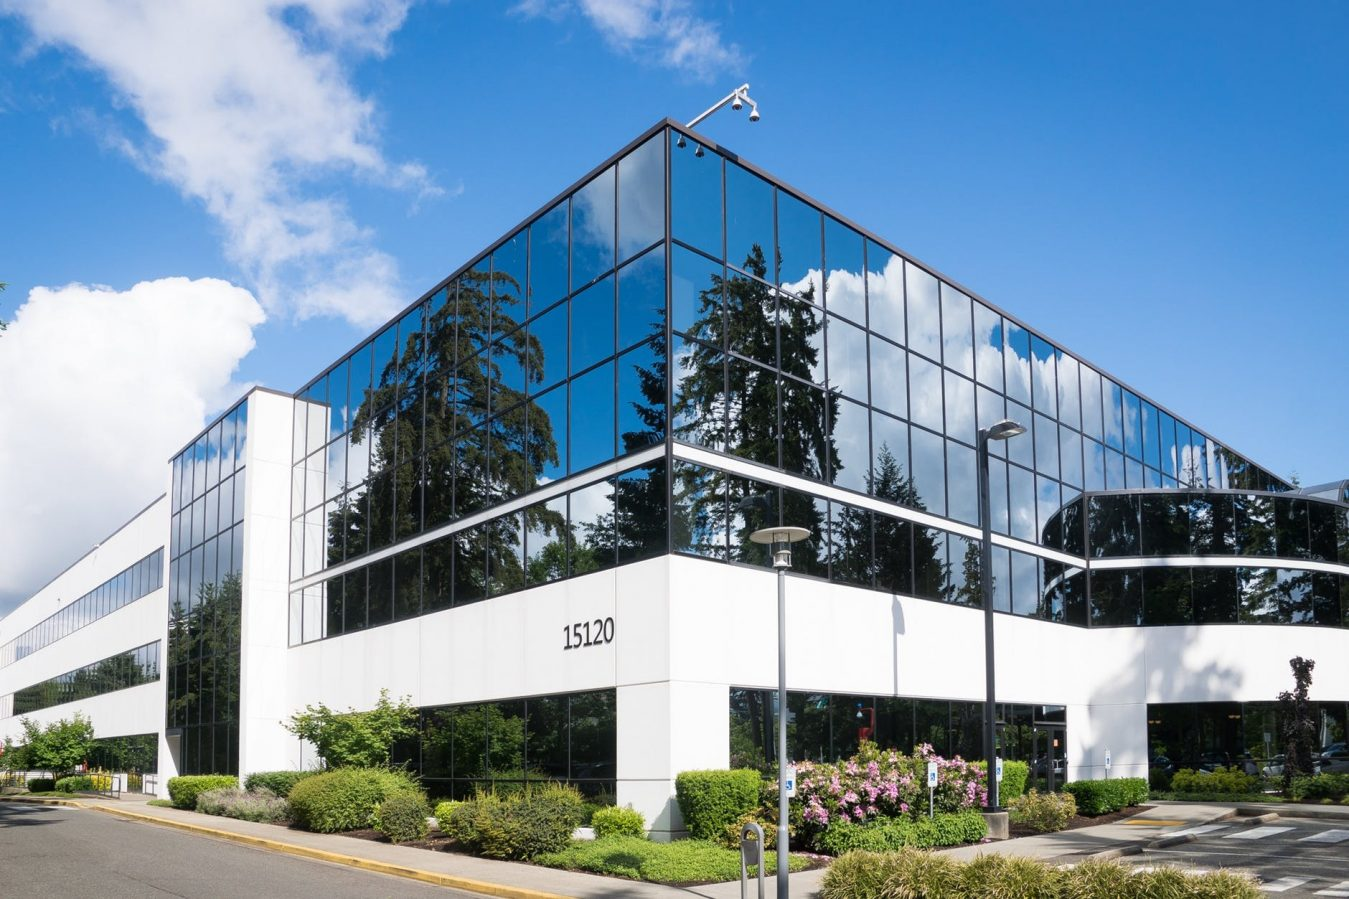 Top Five Mistakes With Commercial Real Estate Investment